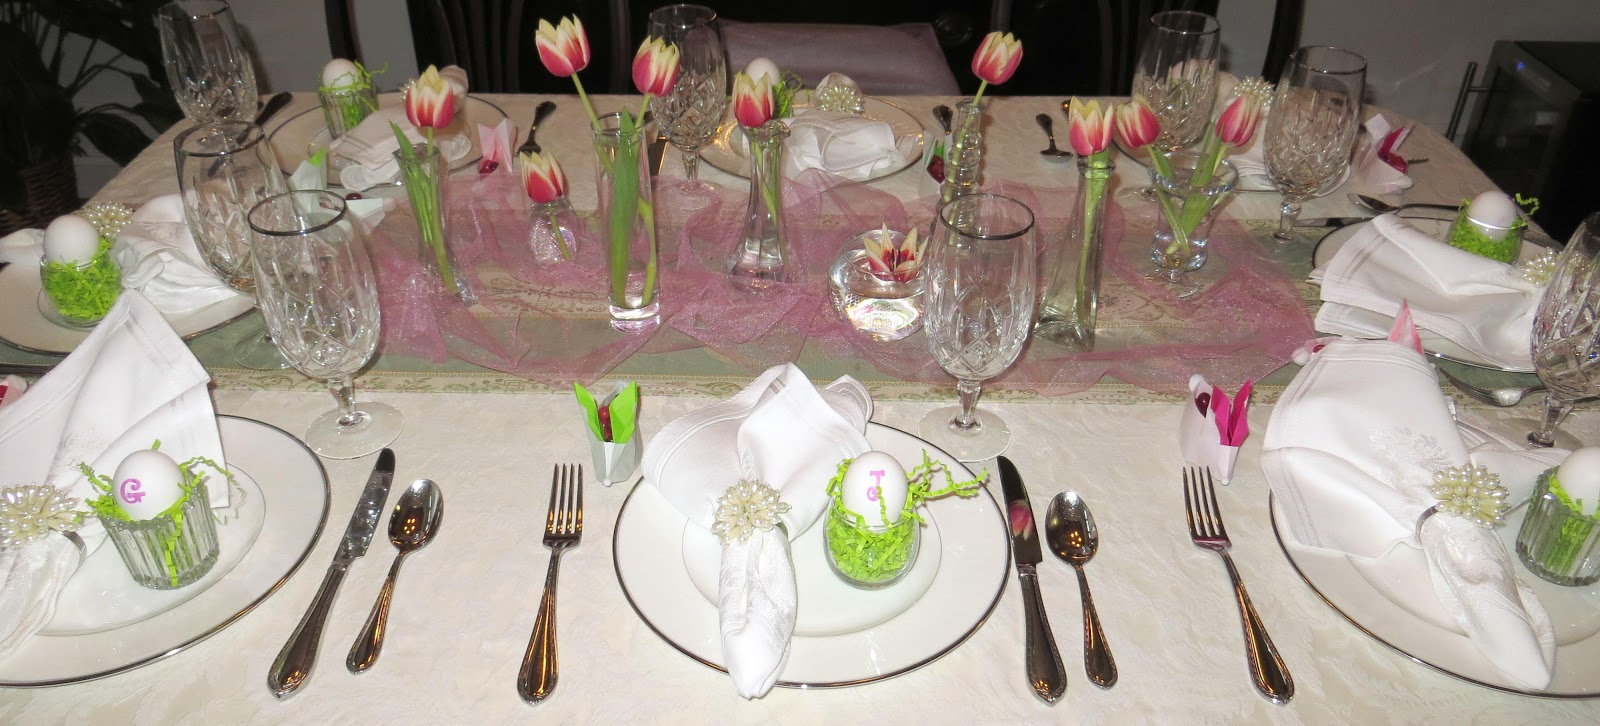 Room mom extraordinaire easter table decorations - Easter table decorations meals special ...